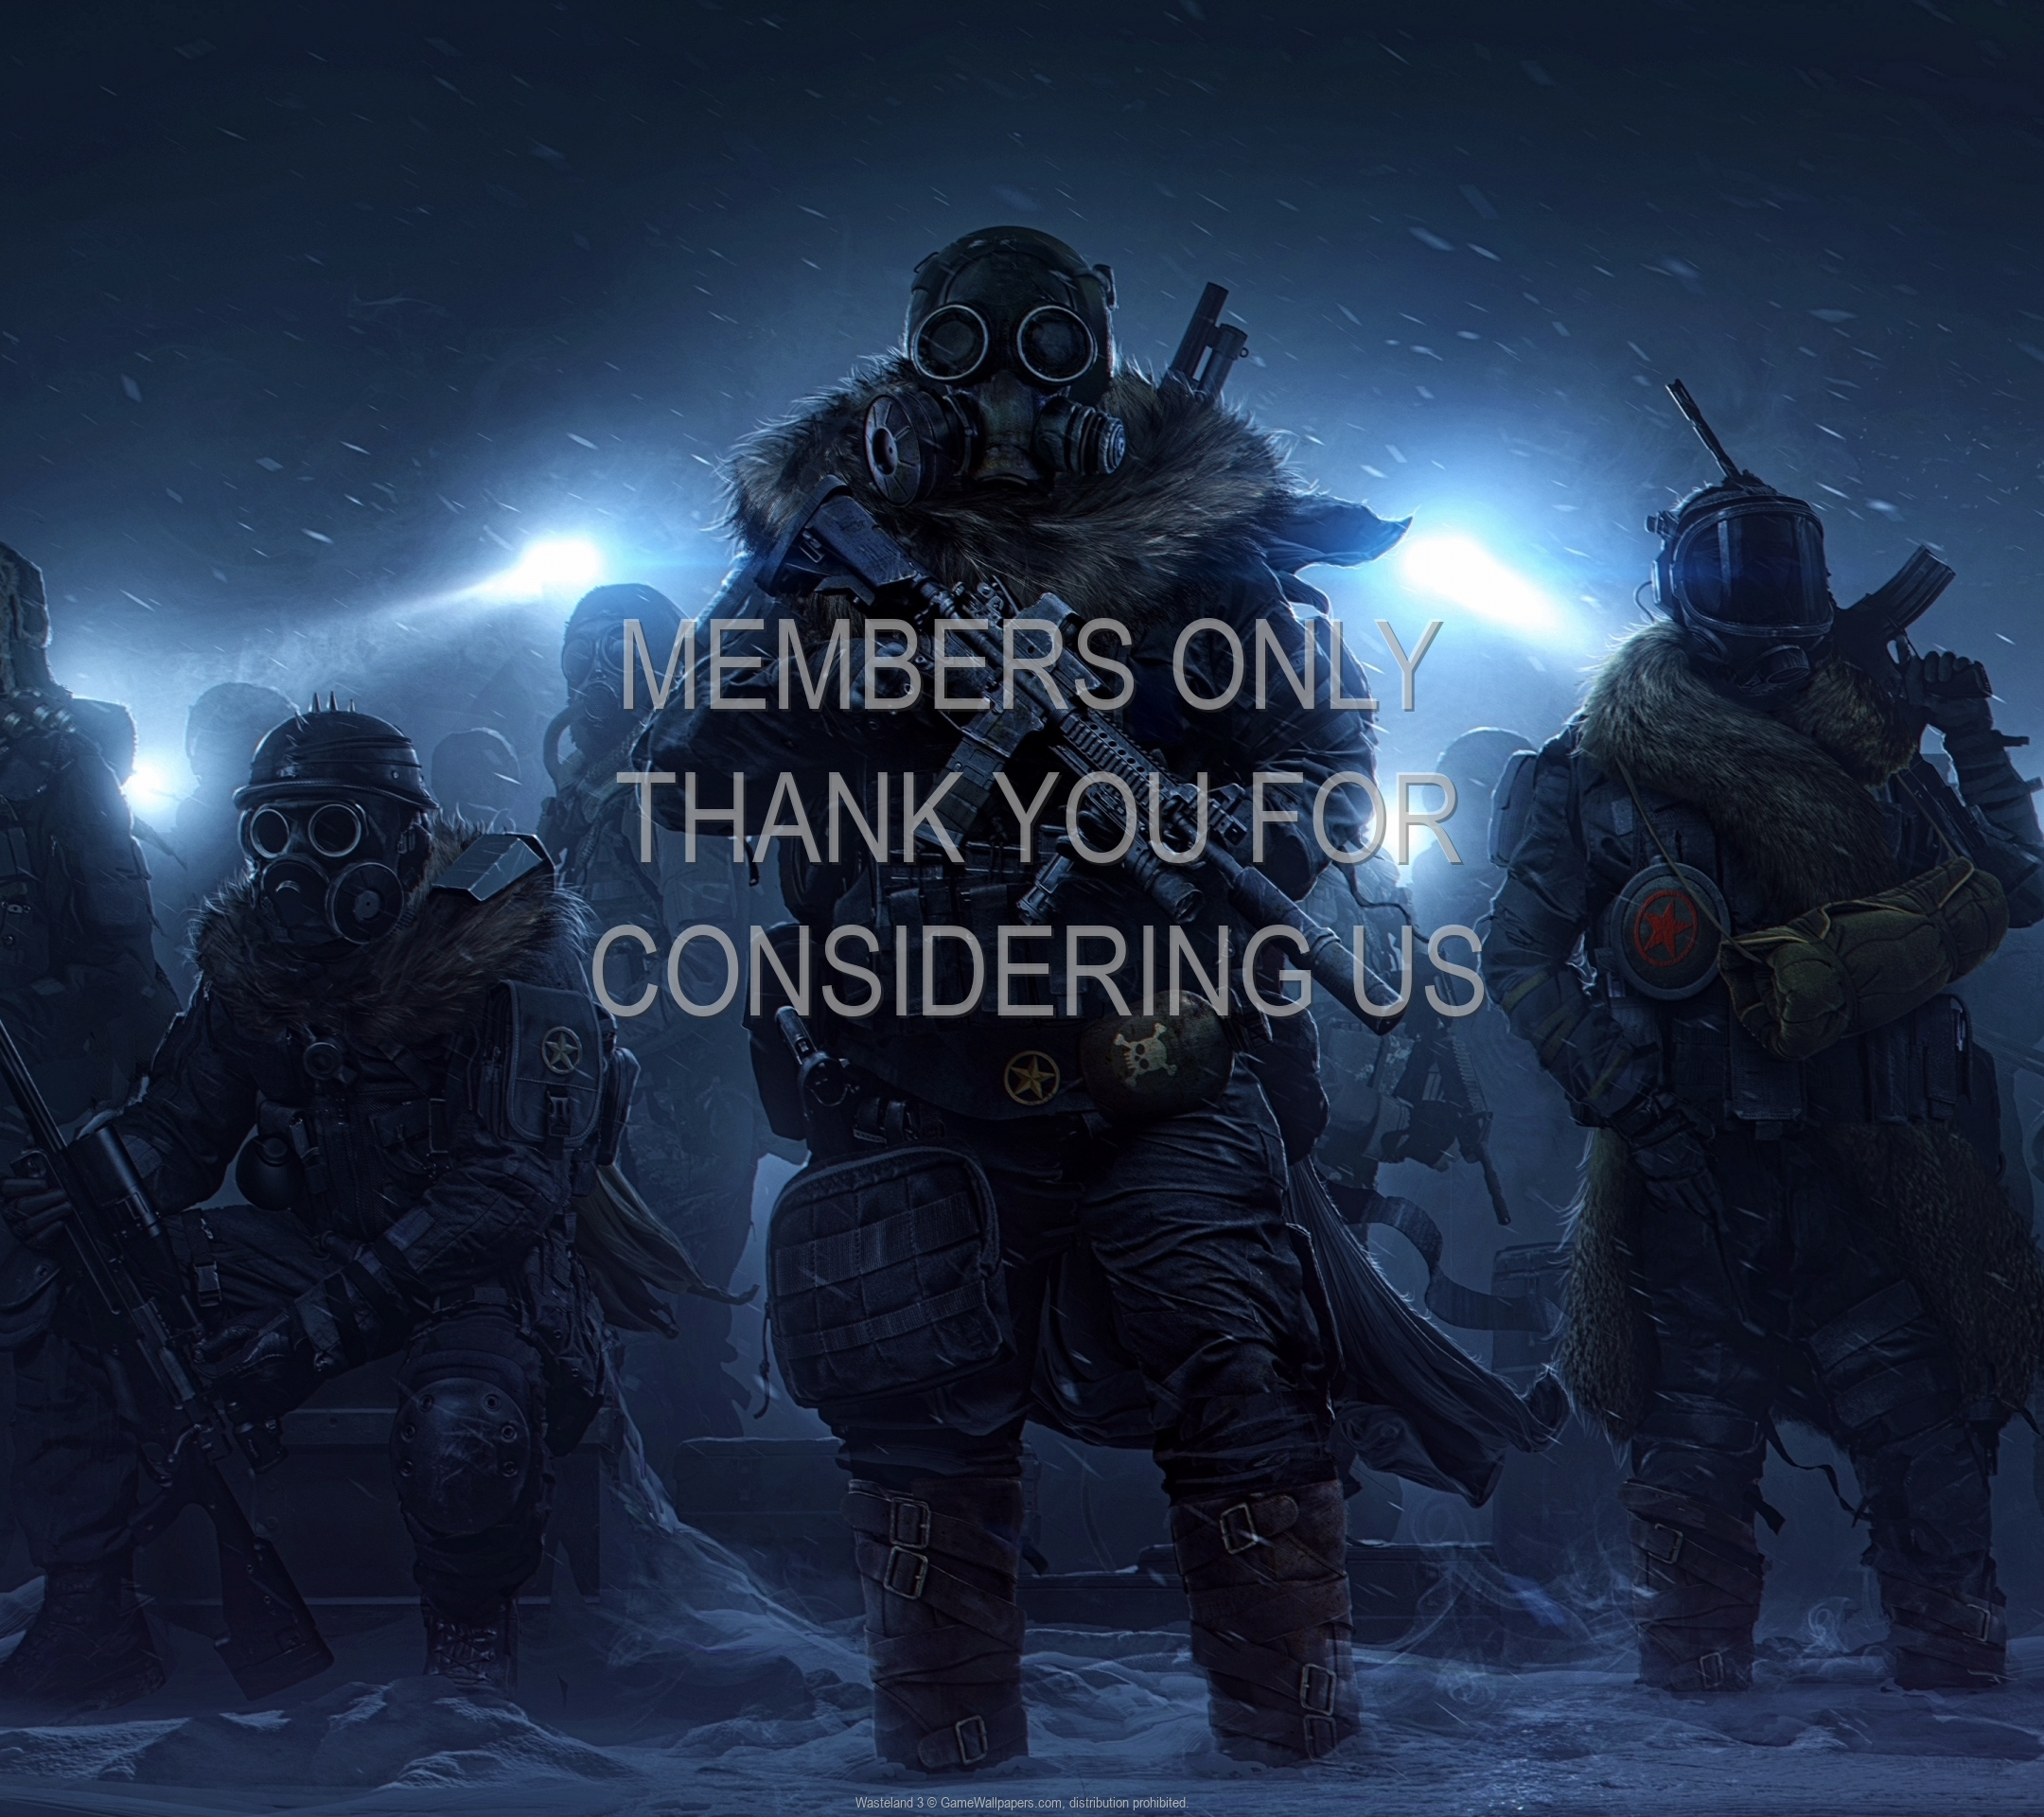 Wasteland 3 1920x1080 Mobile wallpaper or background 01